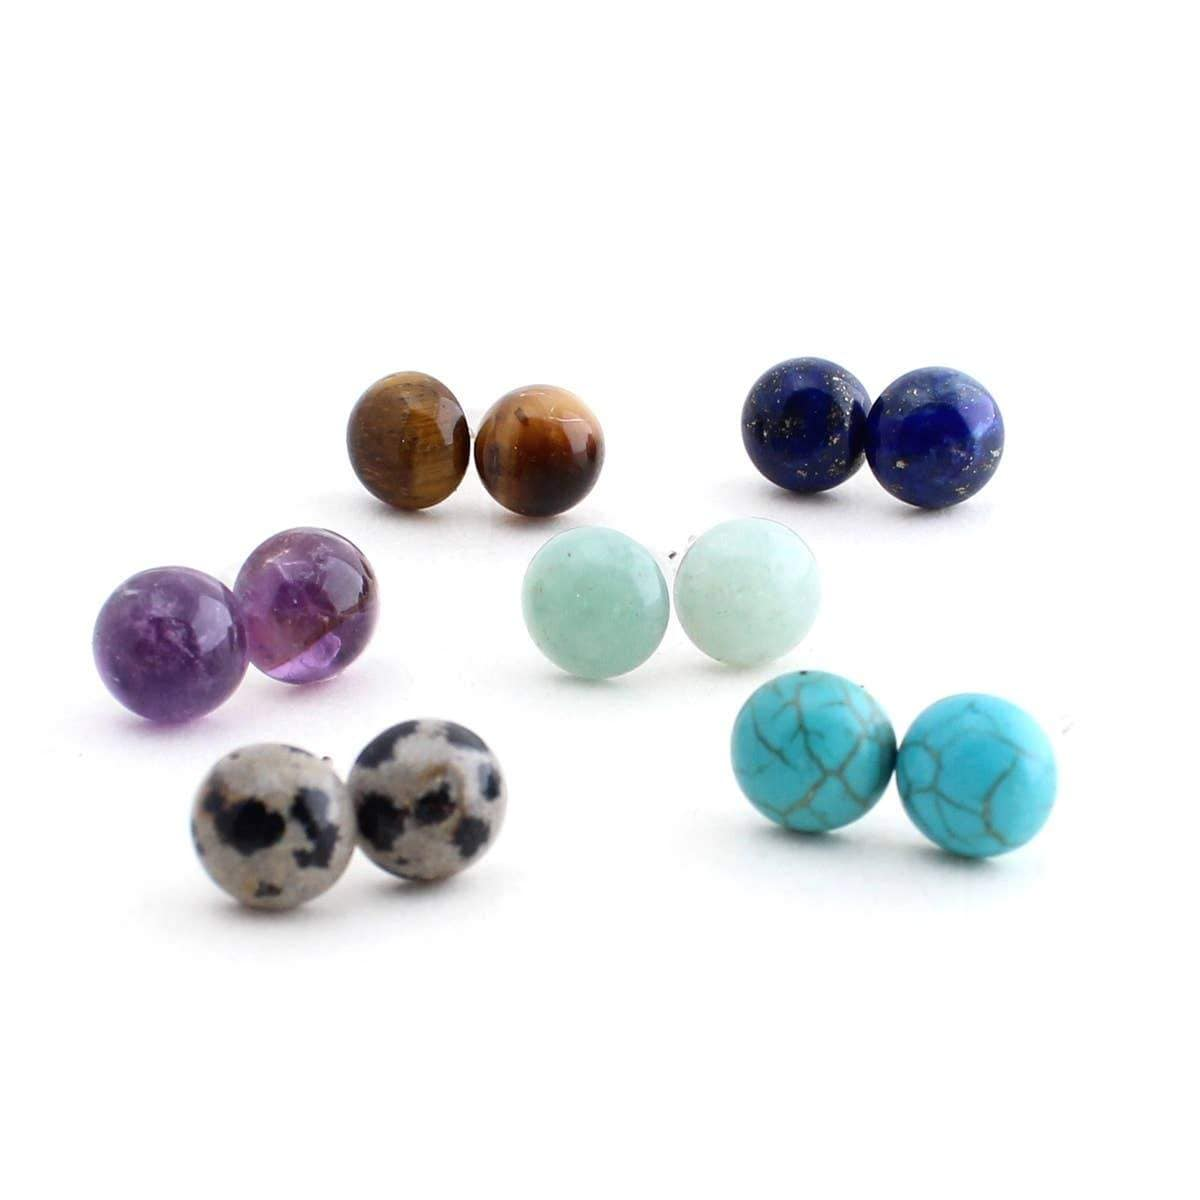 Gemstone Studs - Crafts & Love -Freehand Market